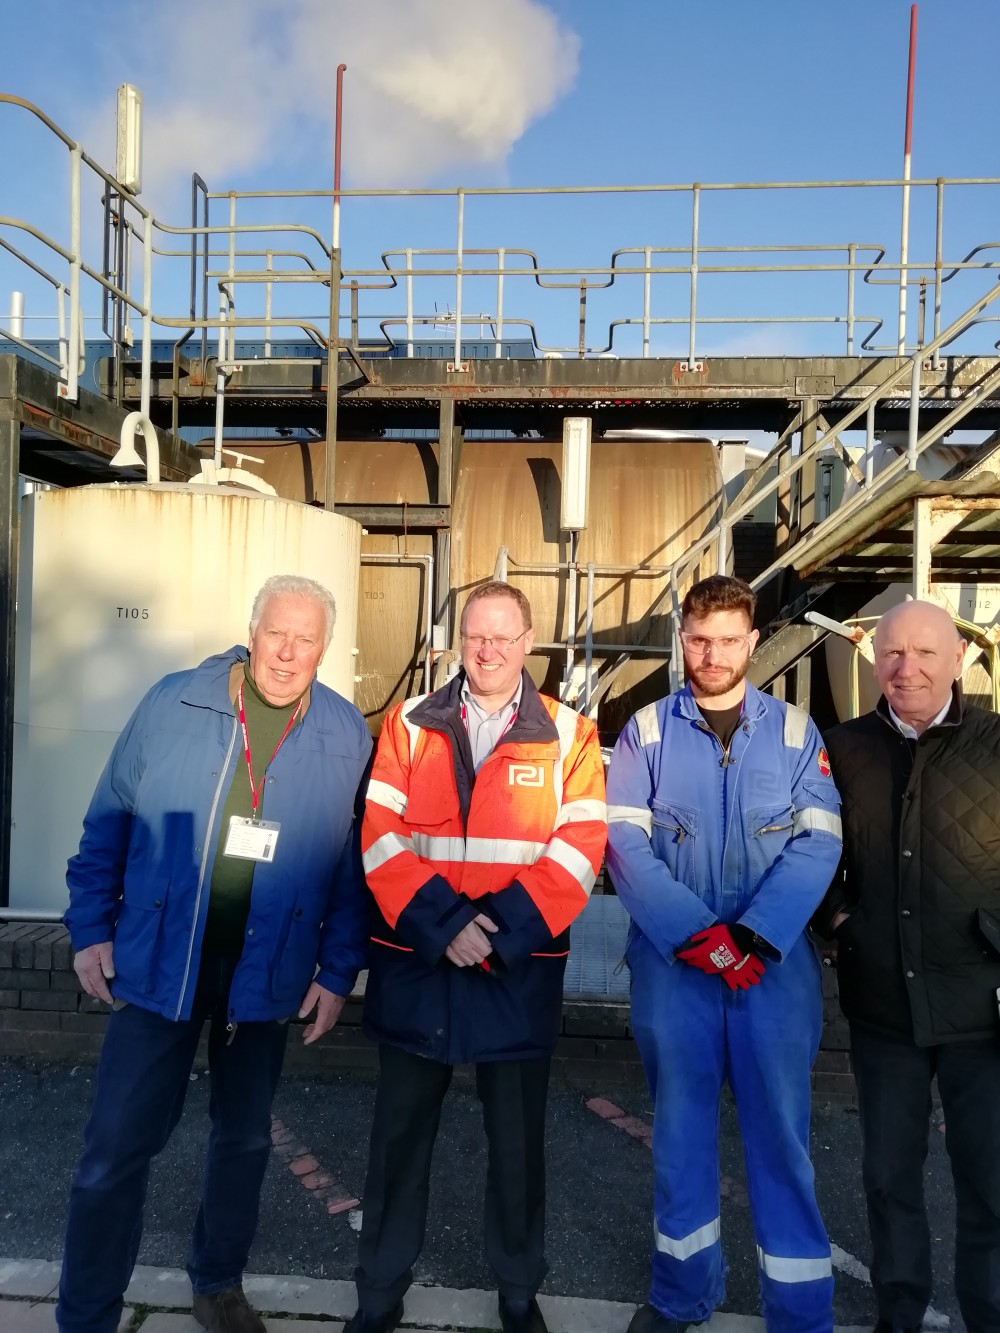 Left to right:  Henk Ketting, Consultant, Ketting Consult; Mark McSorley, Managing Director, Prodecon Ltd; Georgios Balia, MRes student, University of Chester; Alan Kidd, Chairman, Prodecon Ltd.